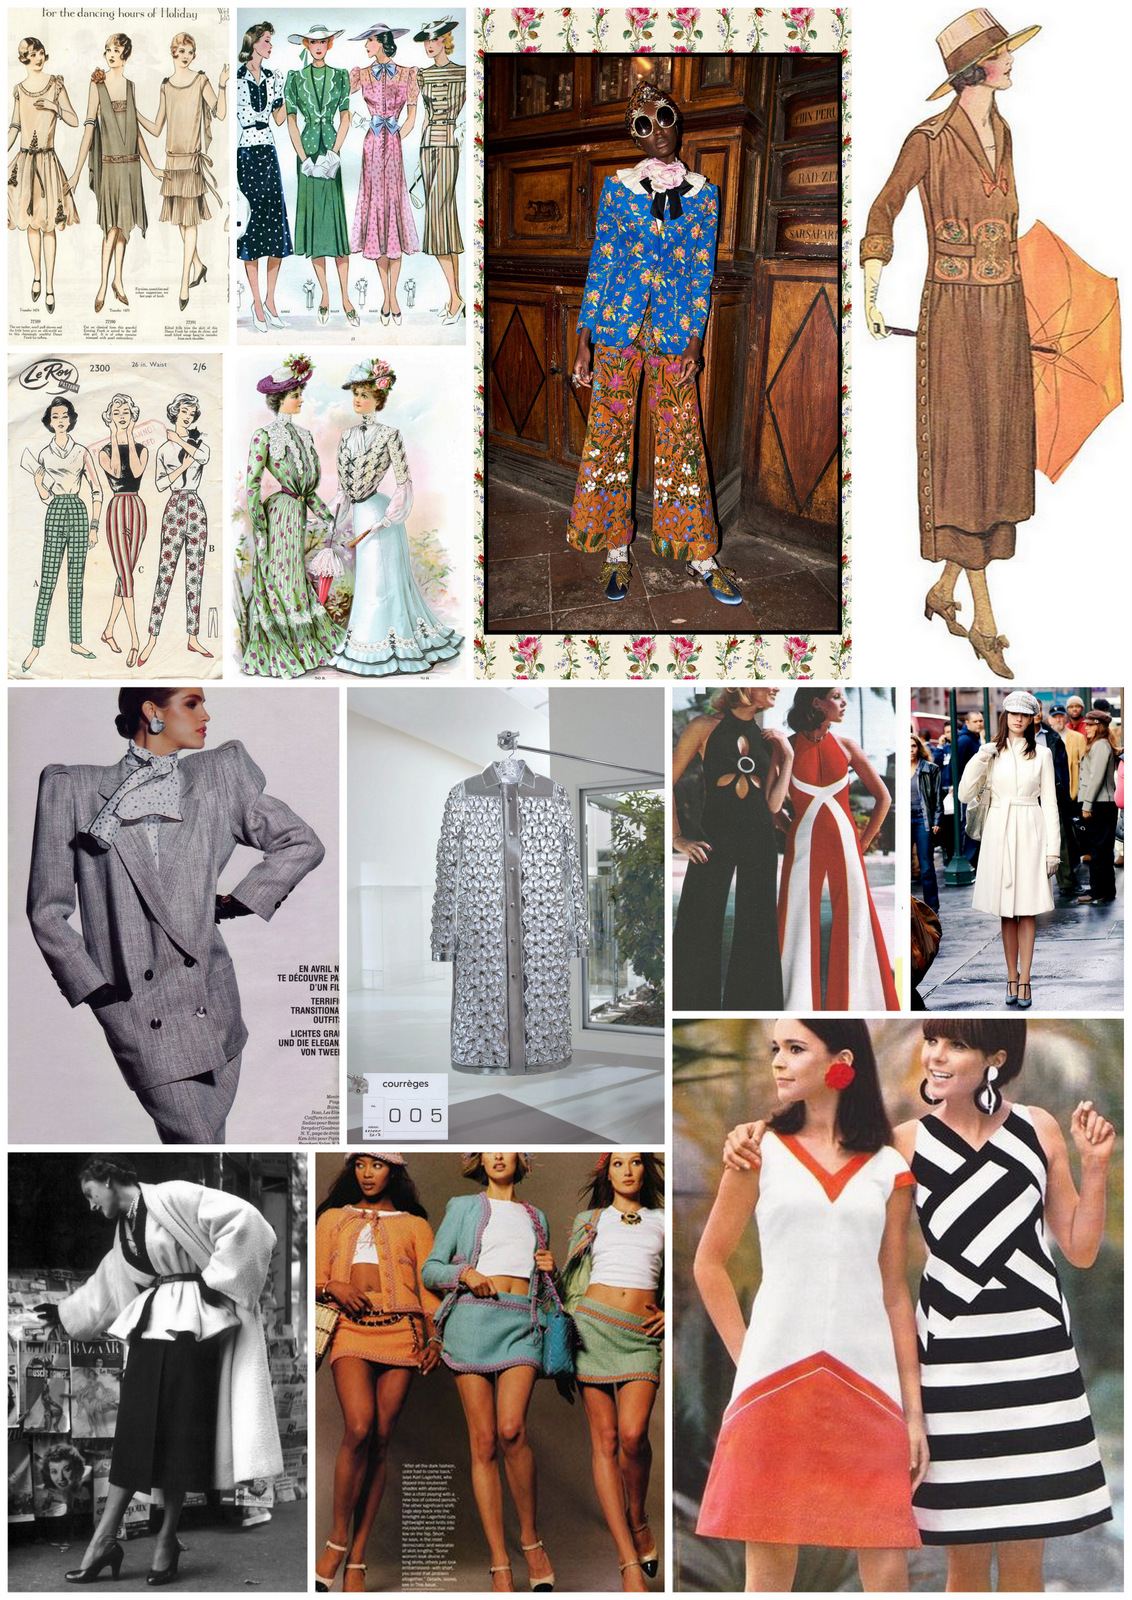 Fashion History Series | The Fashion Folks